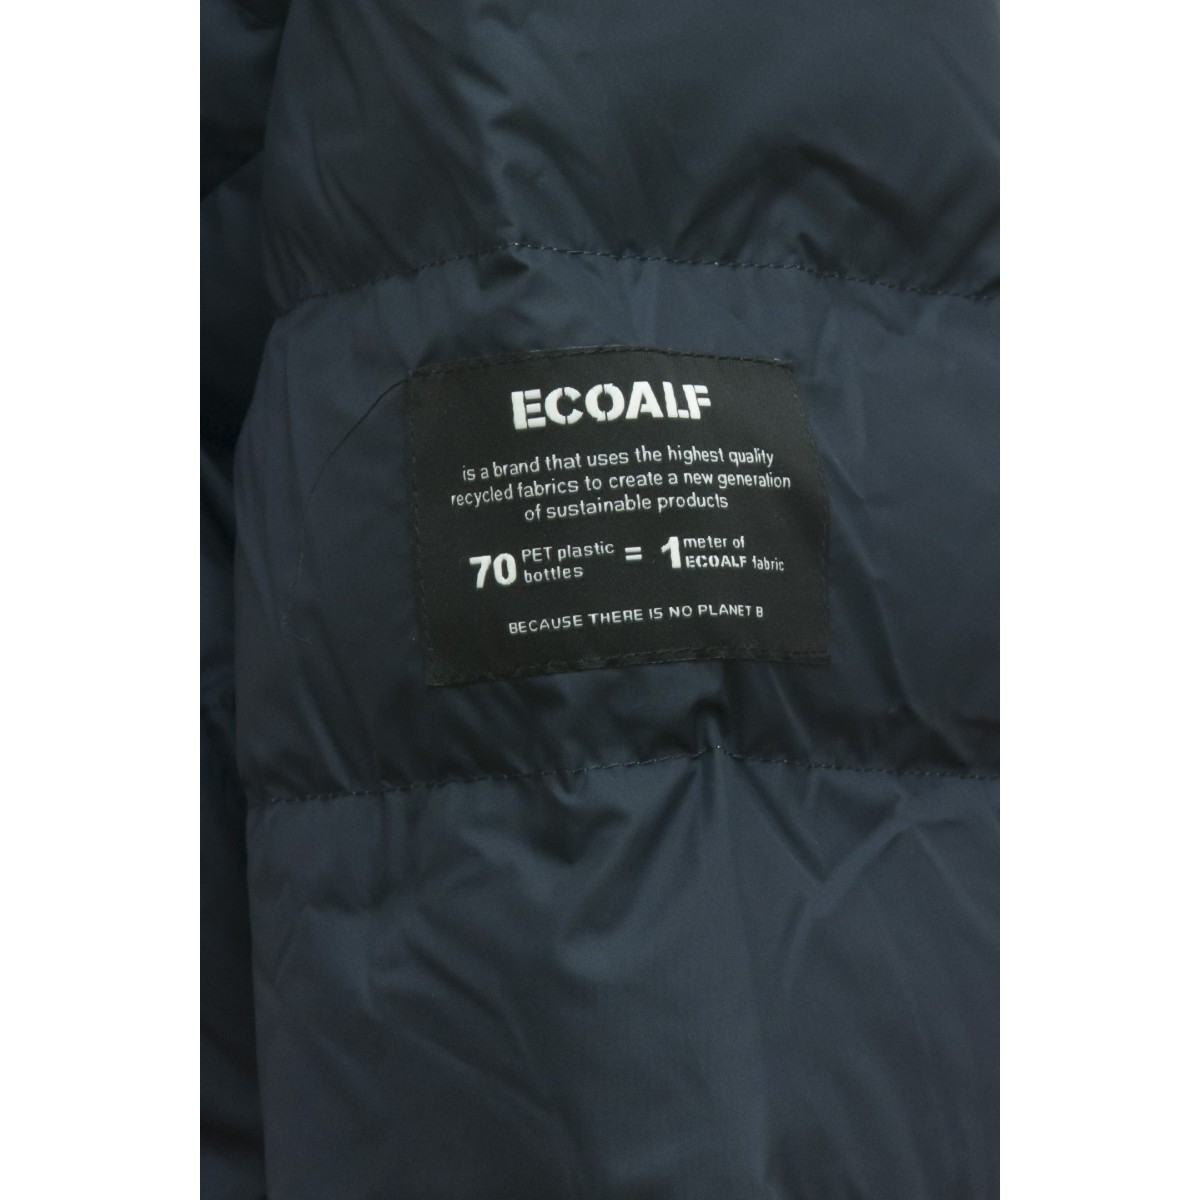 Piumino - Asp down jkt 100% recycled polyester